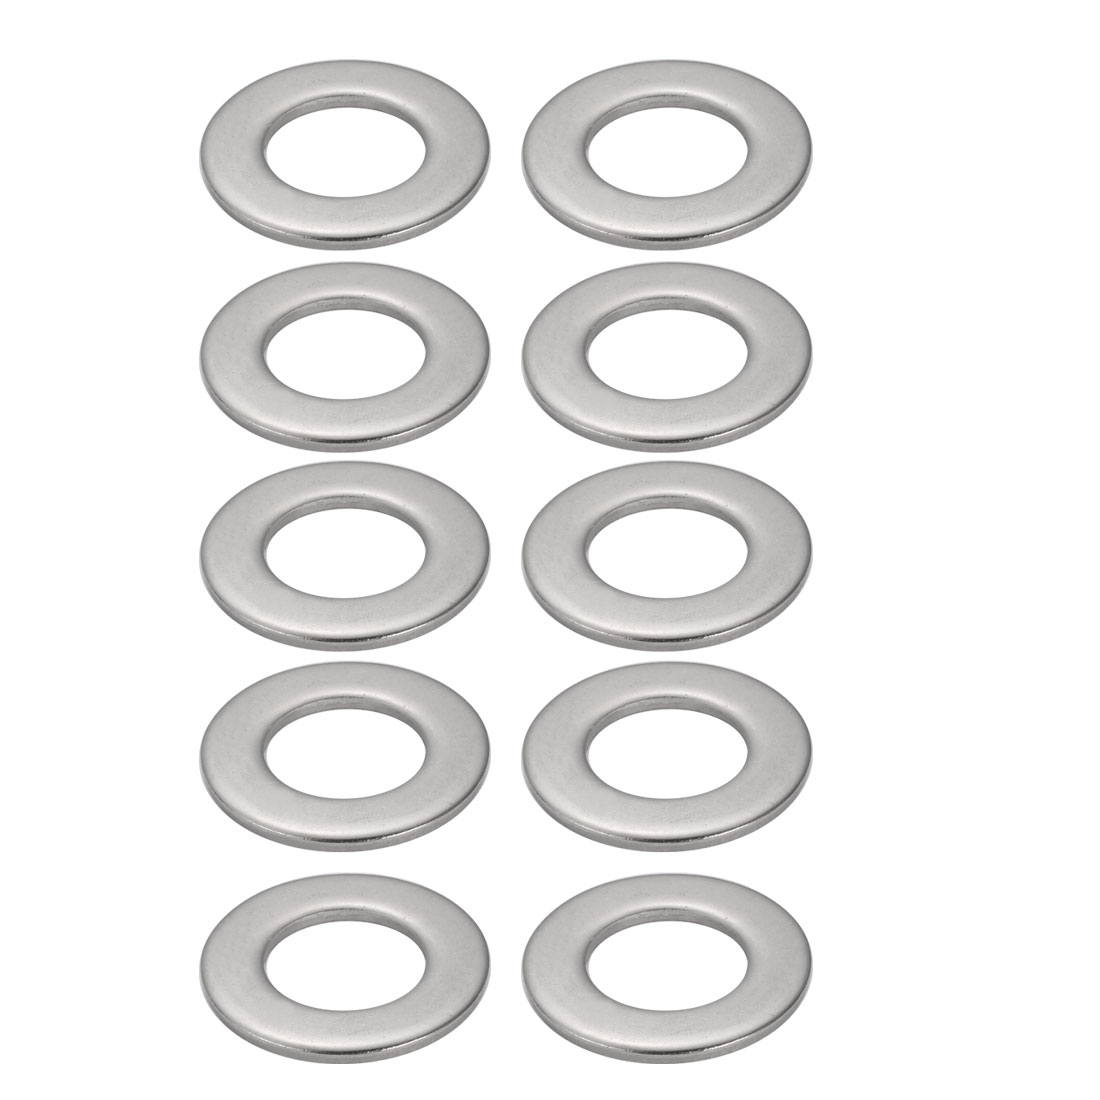 M30x56mmx4mm DIN125 316 Stainless Steel Flat Washer Silver Tone 10pcs